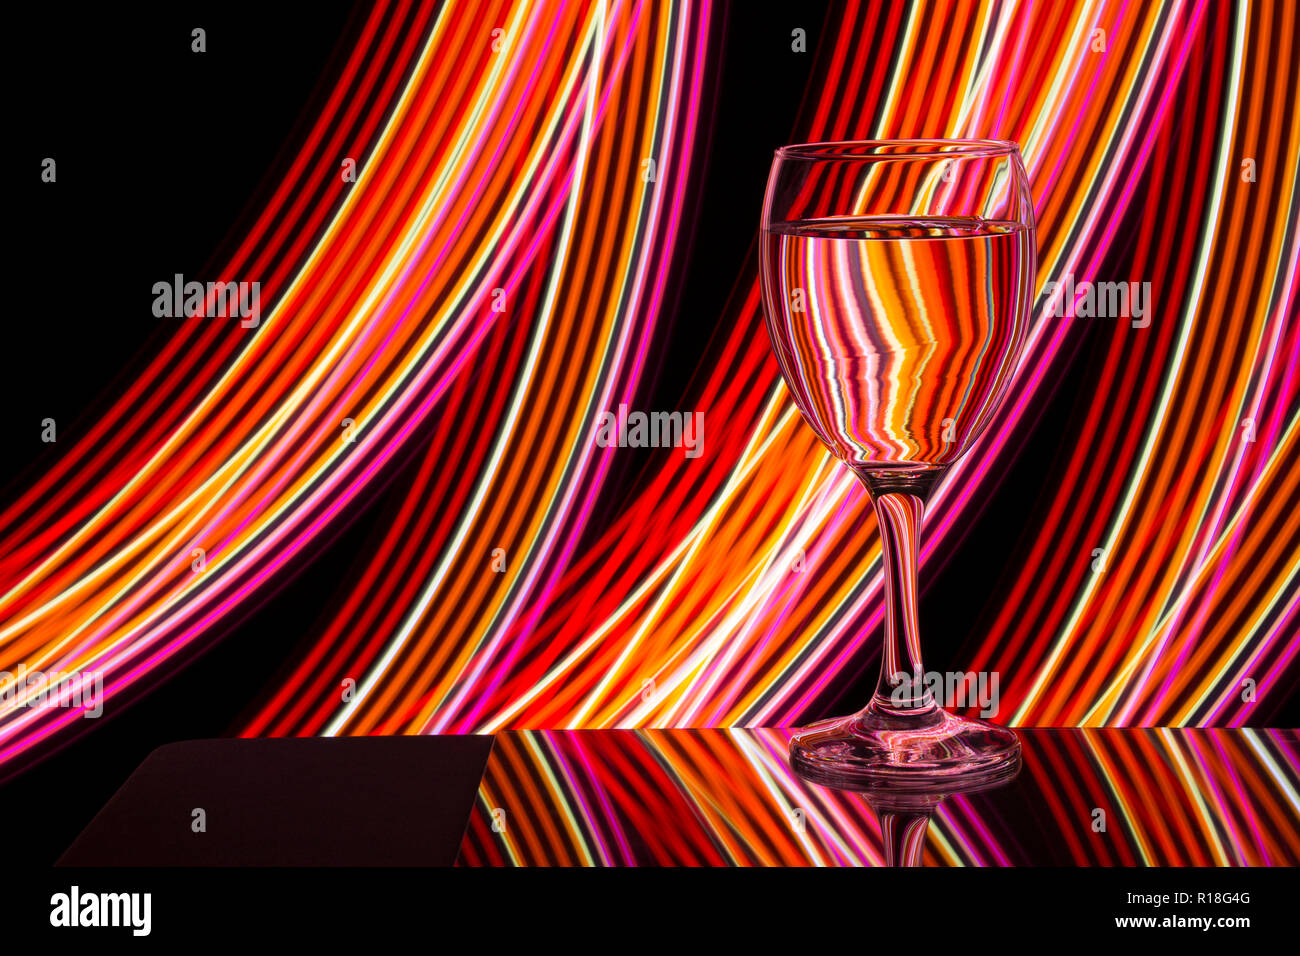 Wine glass / glasses on a black background with neon light painting Stock Photo